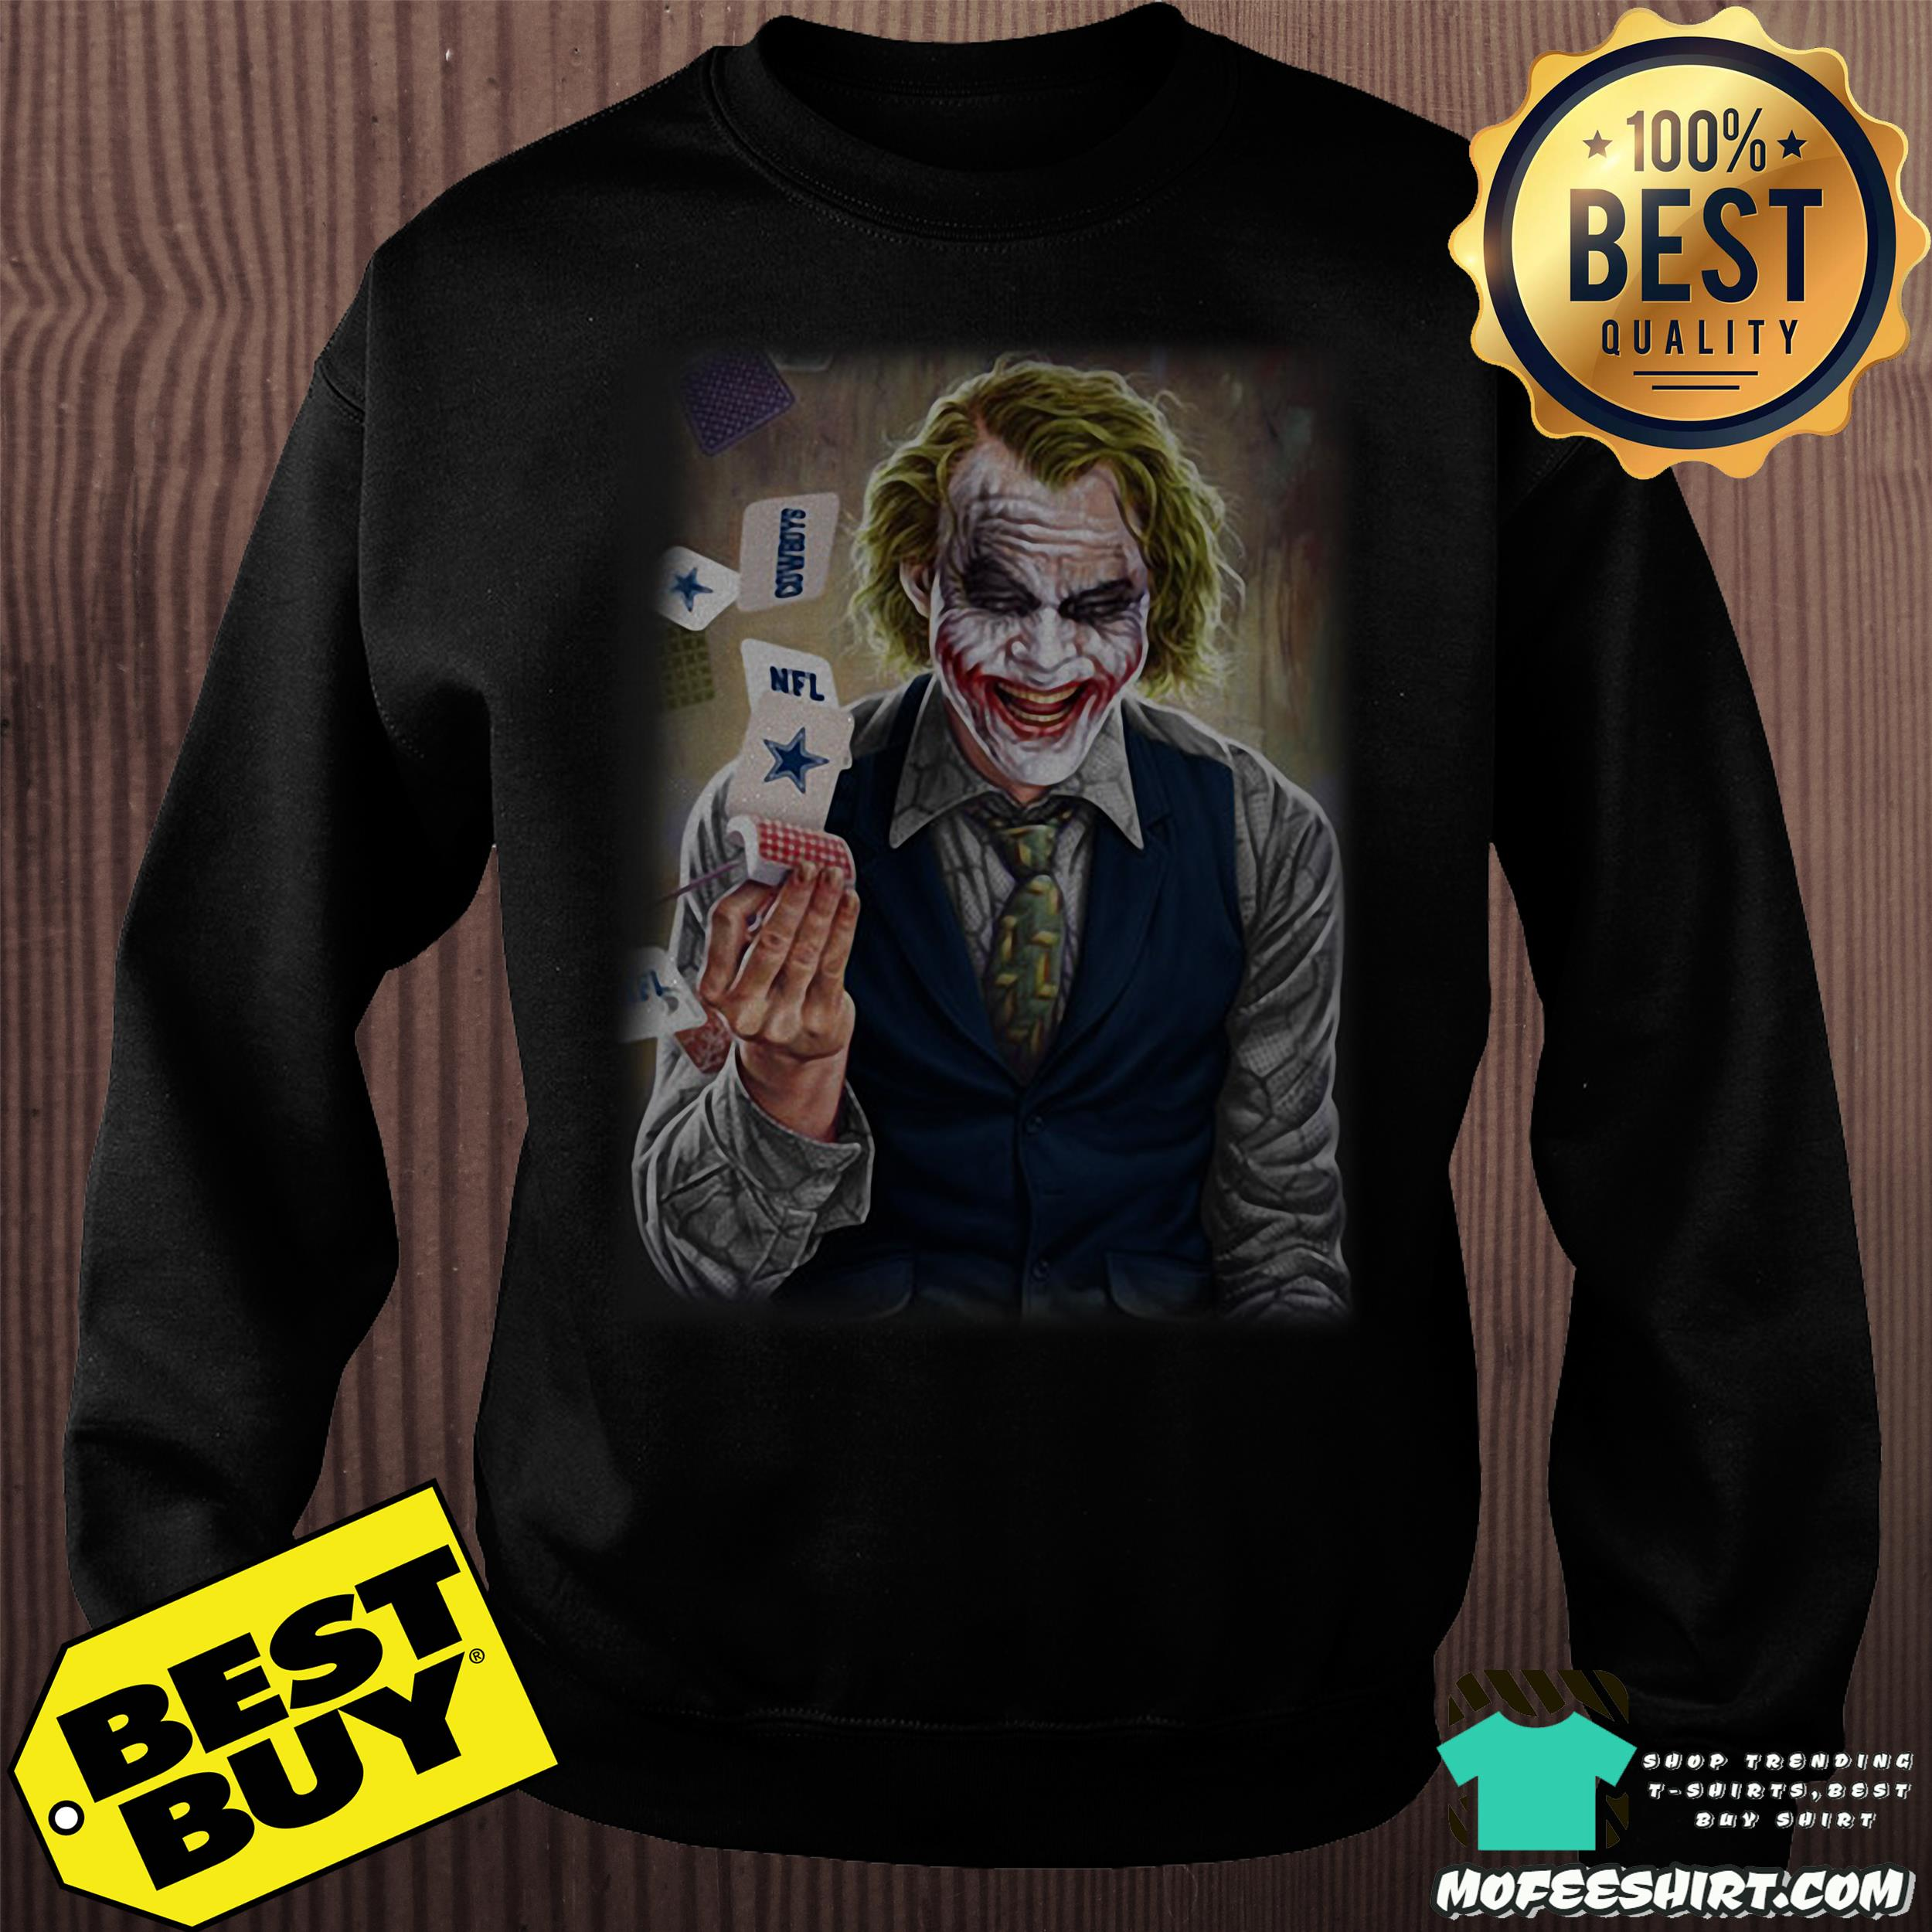 nfl joker playing cards dark knight sweatshirt - NFL Joker Playing Cards Dark Knight shirt